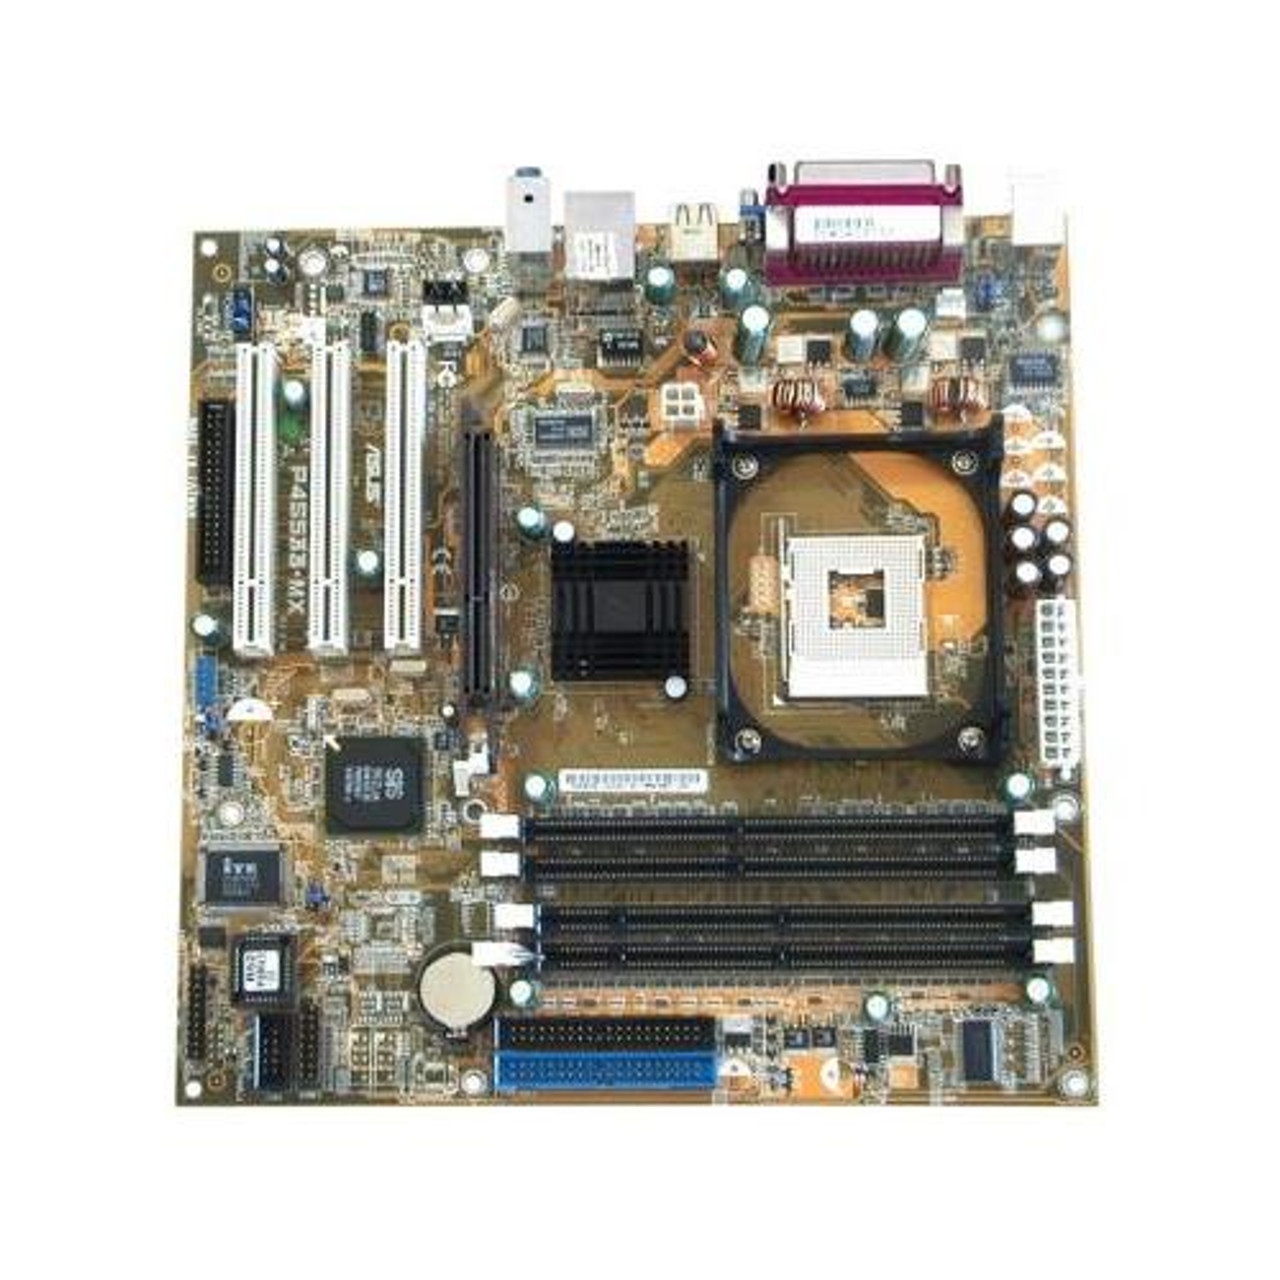 ASUS P4S533-E CHIPSET DRIVER FOR MAC